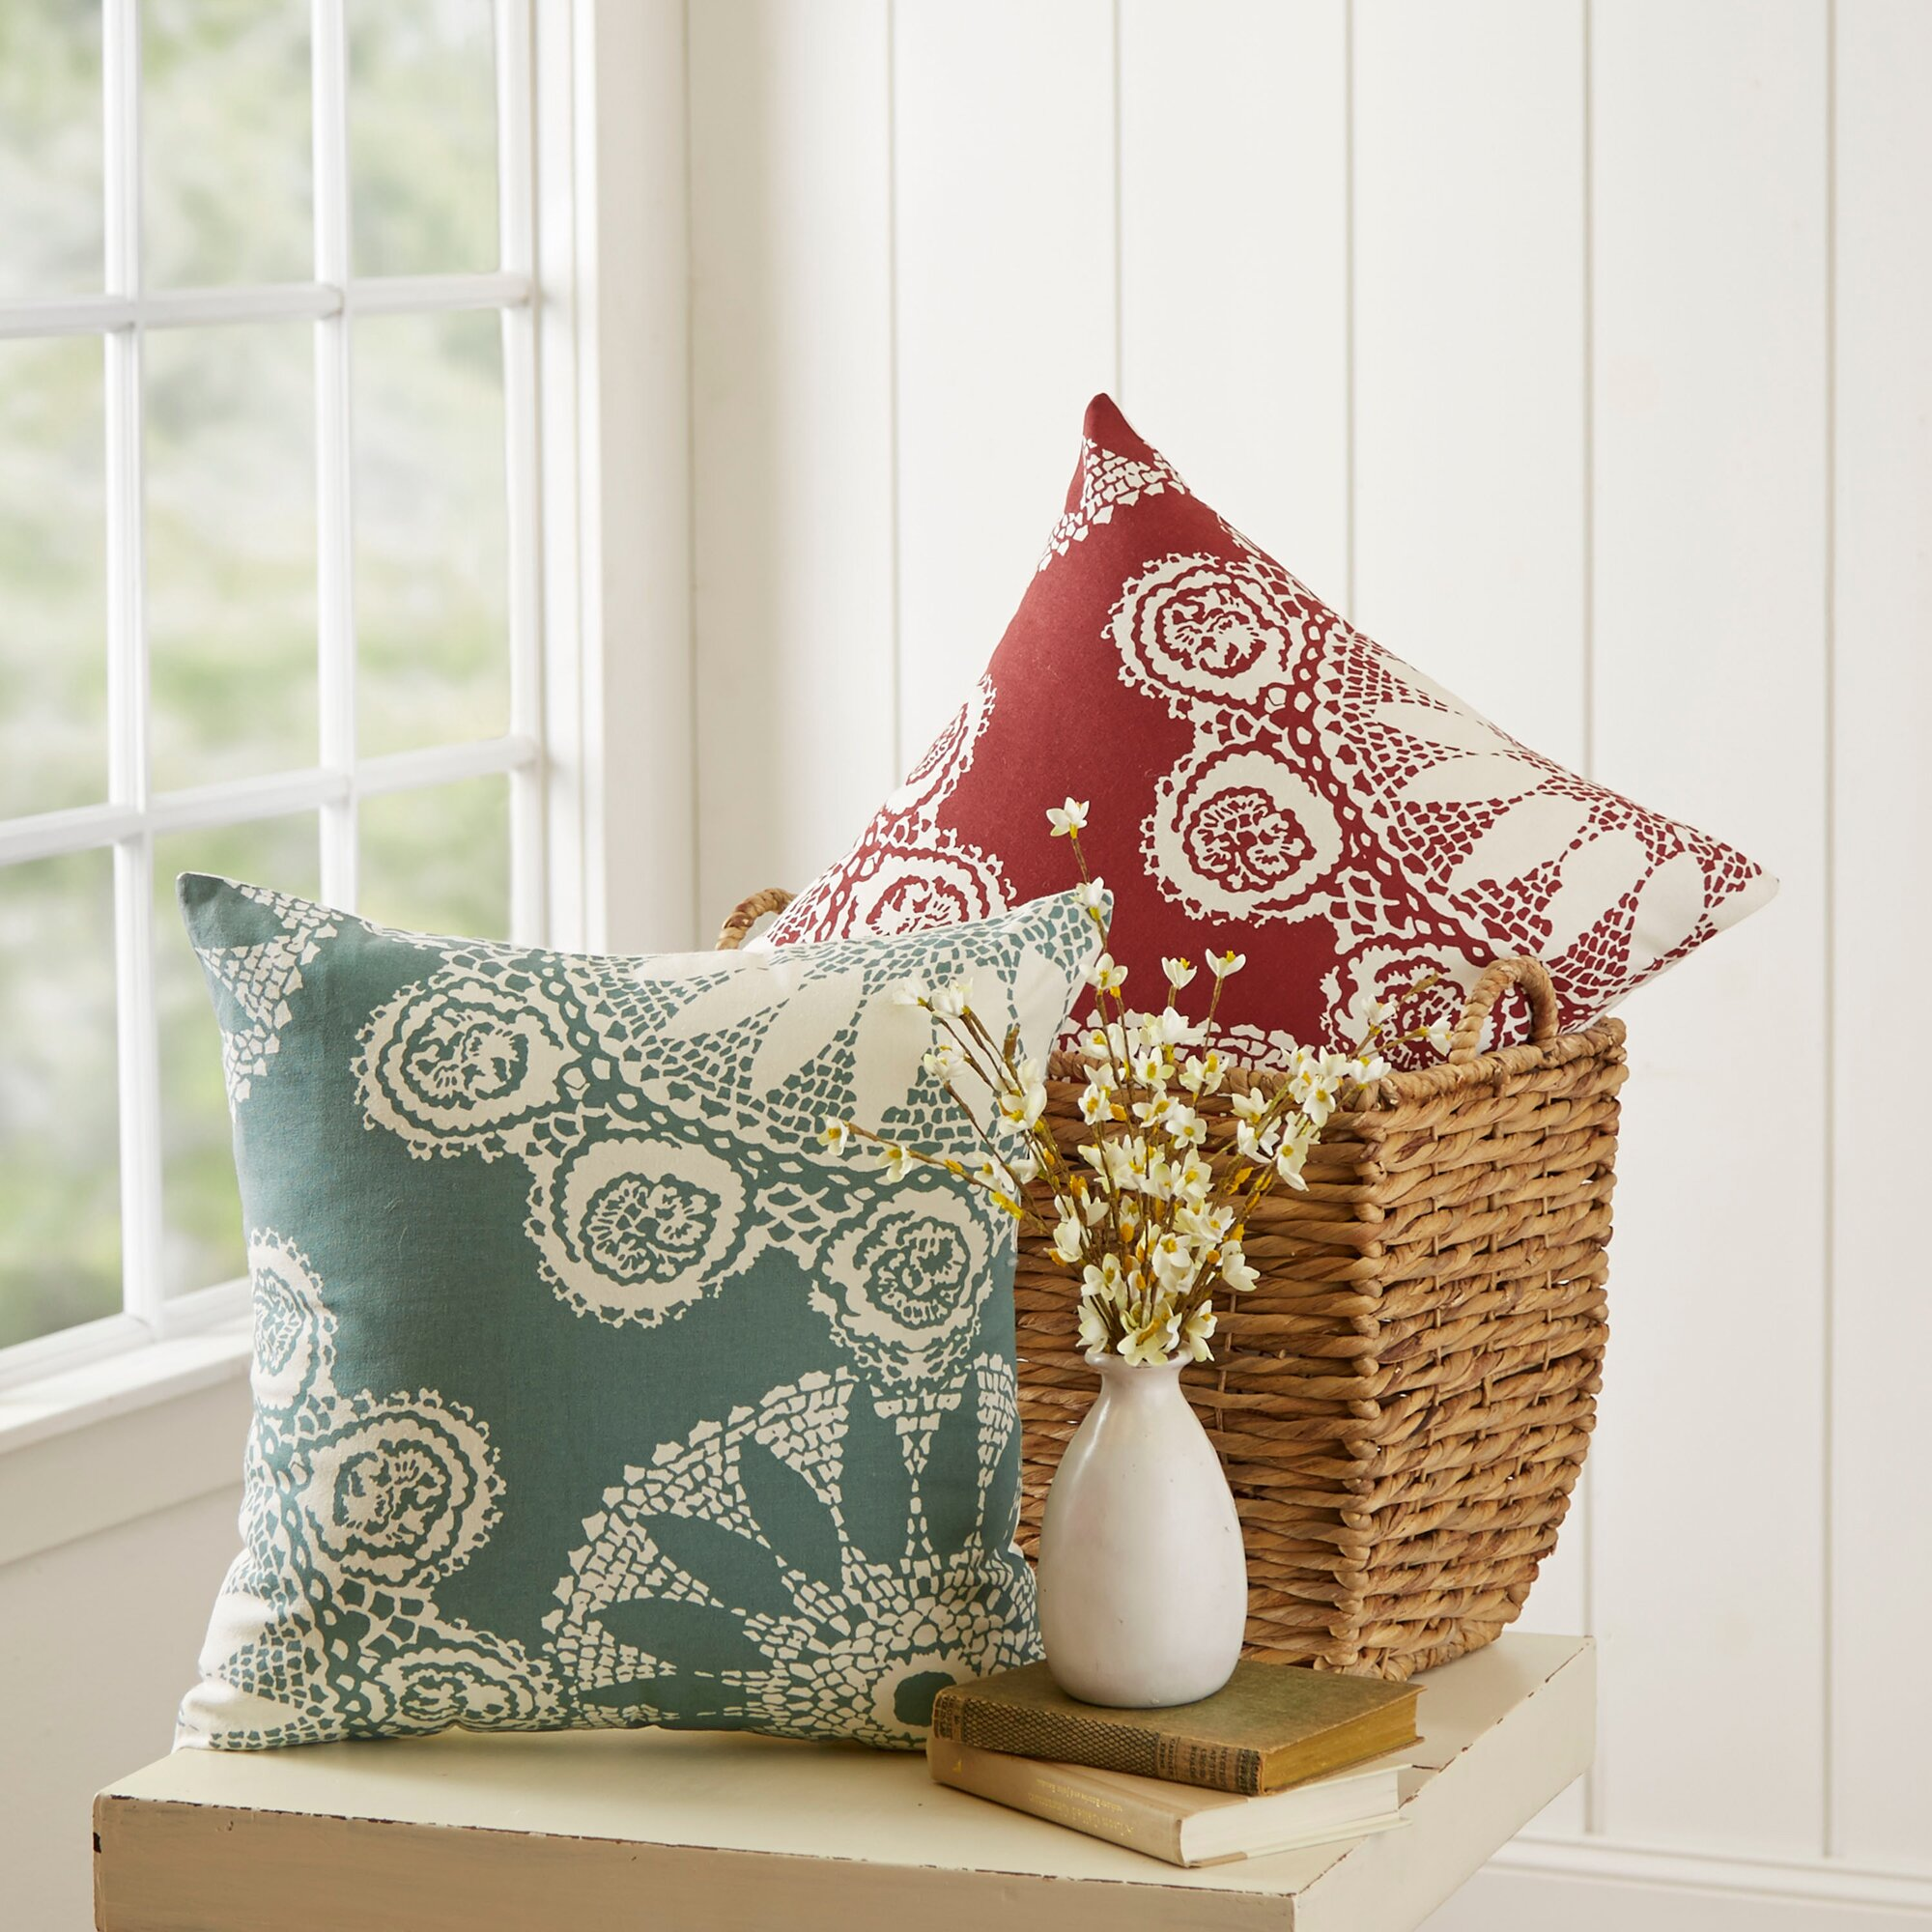 Wayfair Decorative Pillow Covers : Birch Lane Isla Pillow Cover & Reviews Wayfair.ca